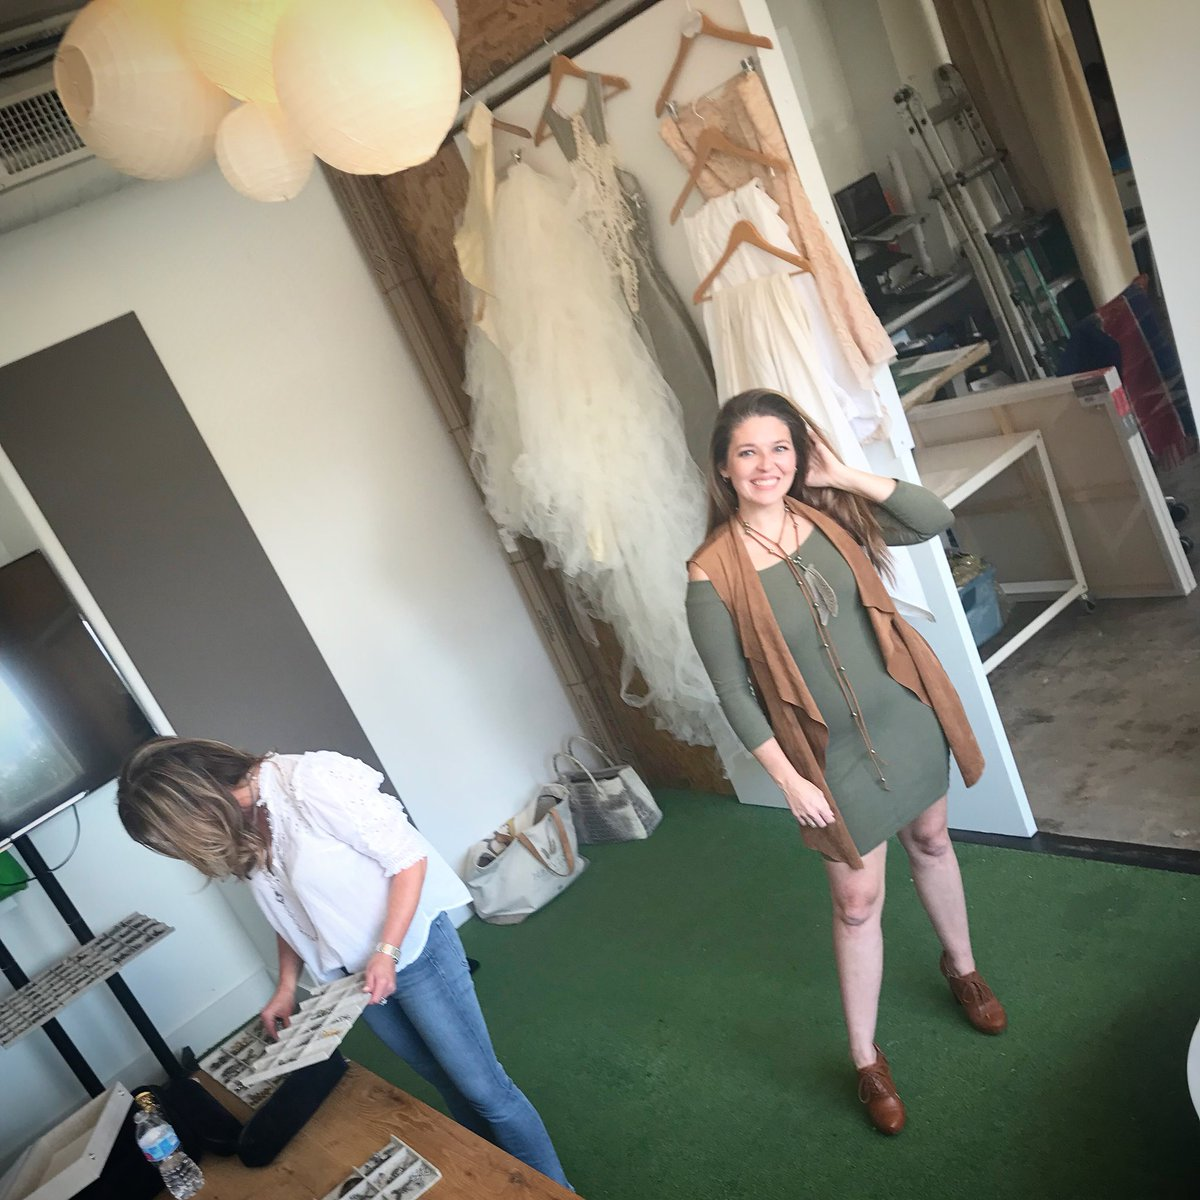 We loved hosting @mobfashionweek recently for model fittings, photo shoots and hair/makeup. Cant wait to see them walk the runway, Saturday, Sept 22 at @fortmobile // Tickets are $30/online & $40/door - only a few left....don't wait! #fashionweek #somobile #coworking #mobtownpic.twitter.com/t4PeqEZTOI